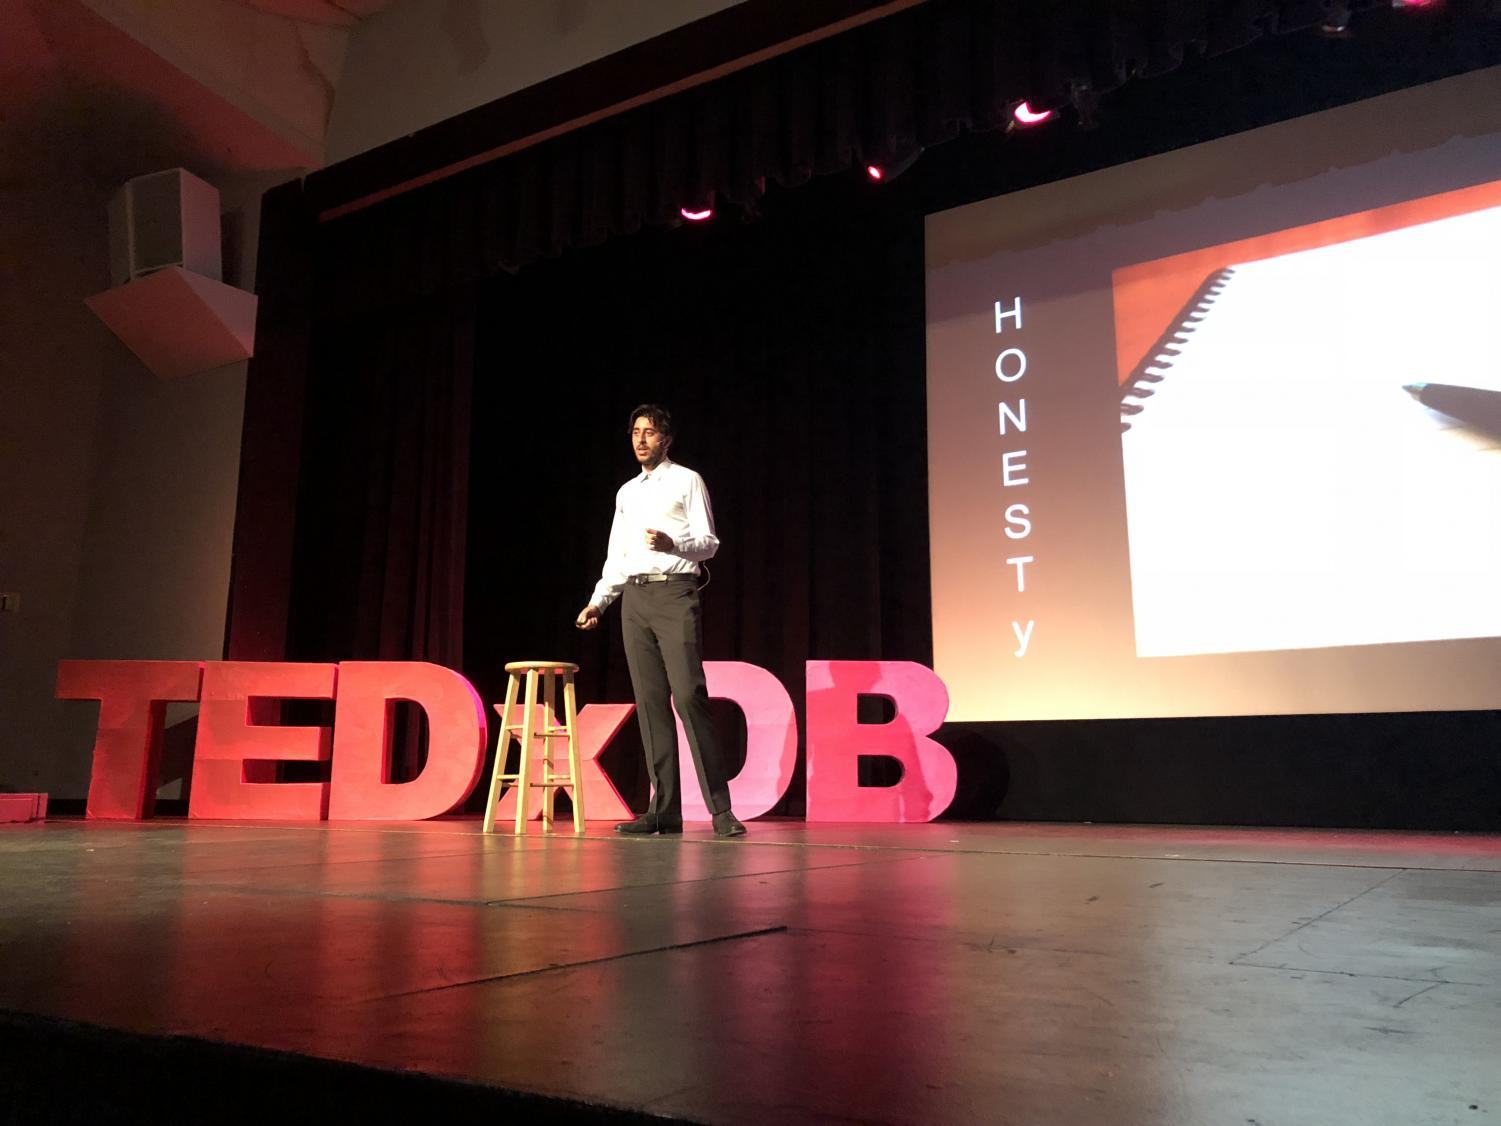 Senior Rajvir Dua speaks at the Ted Talk event on